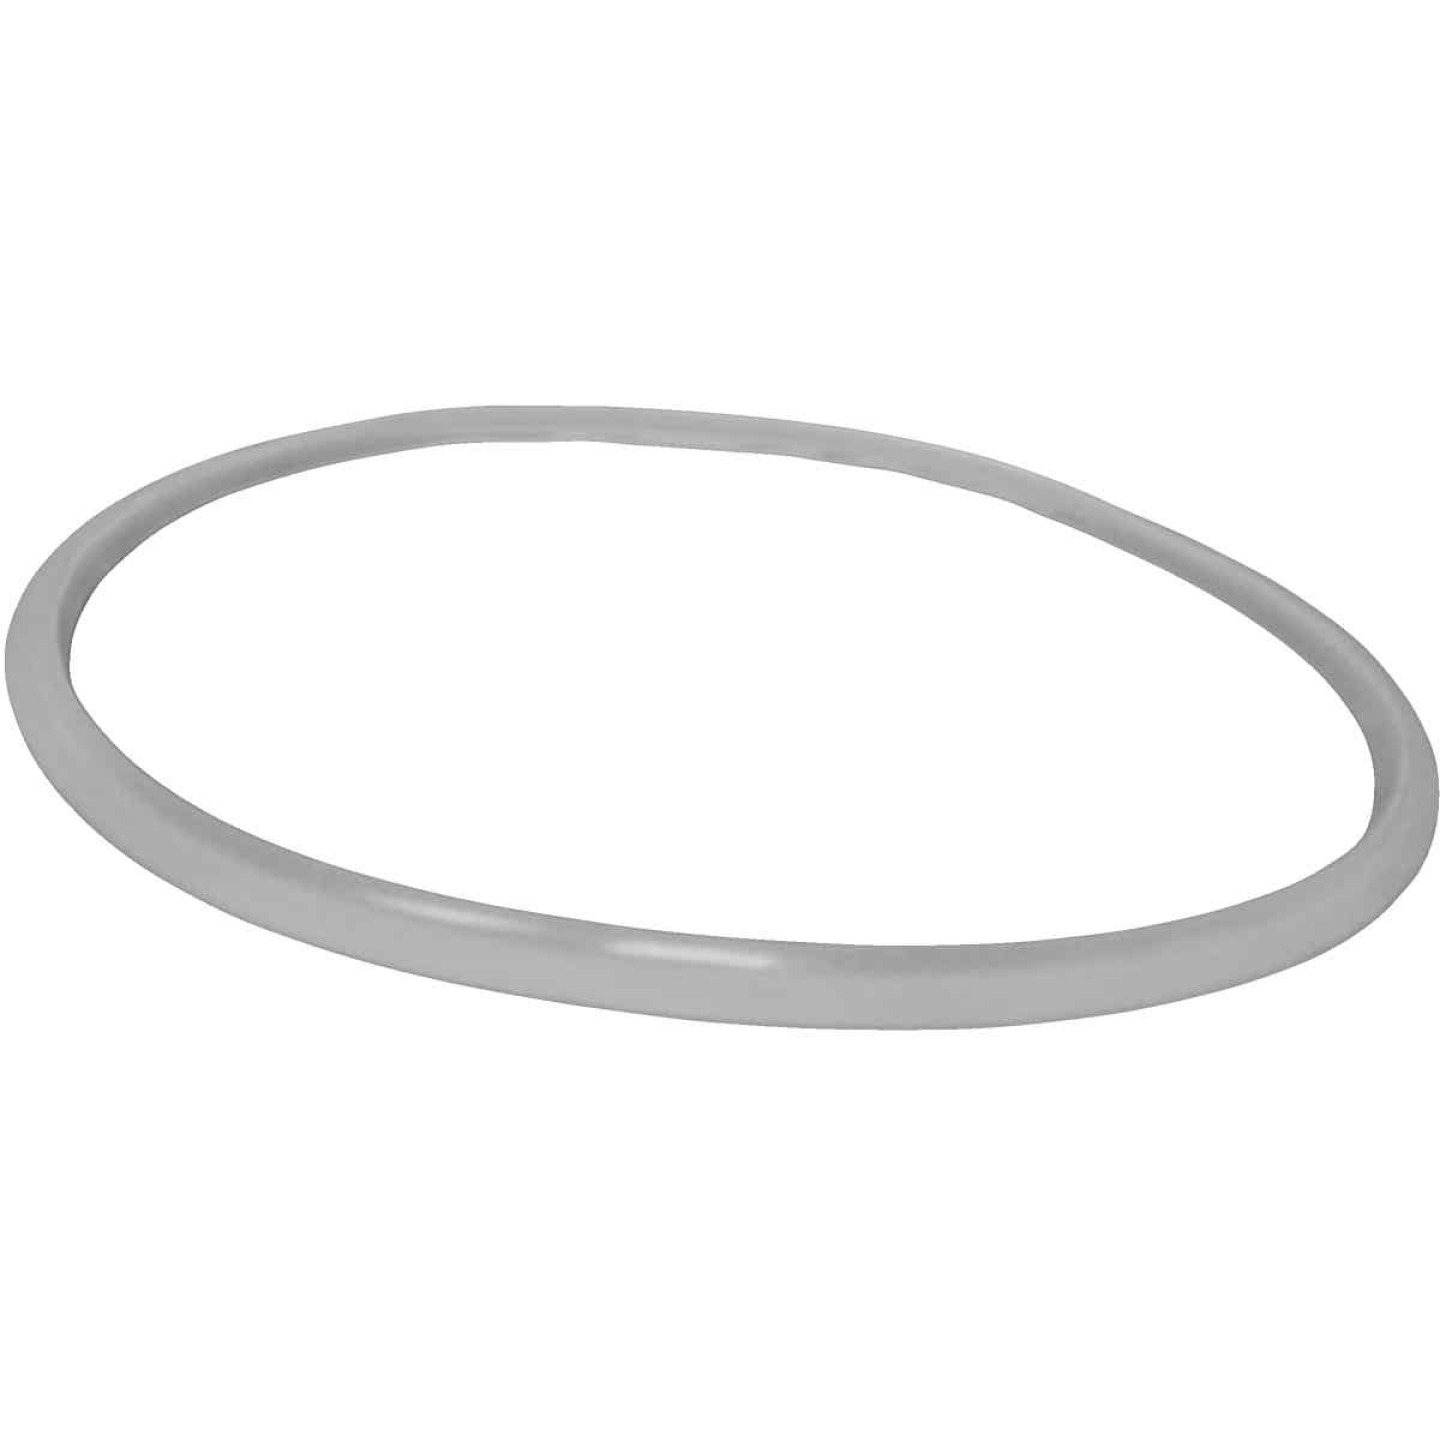 Mirro 8 Quart Sealing Ring Canning Gasket Image 1